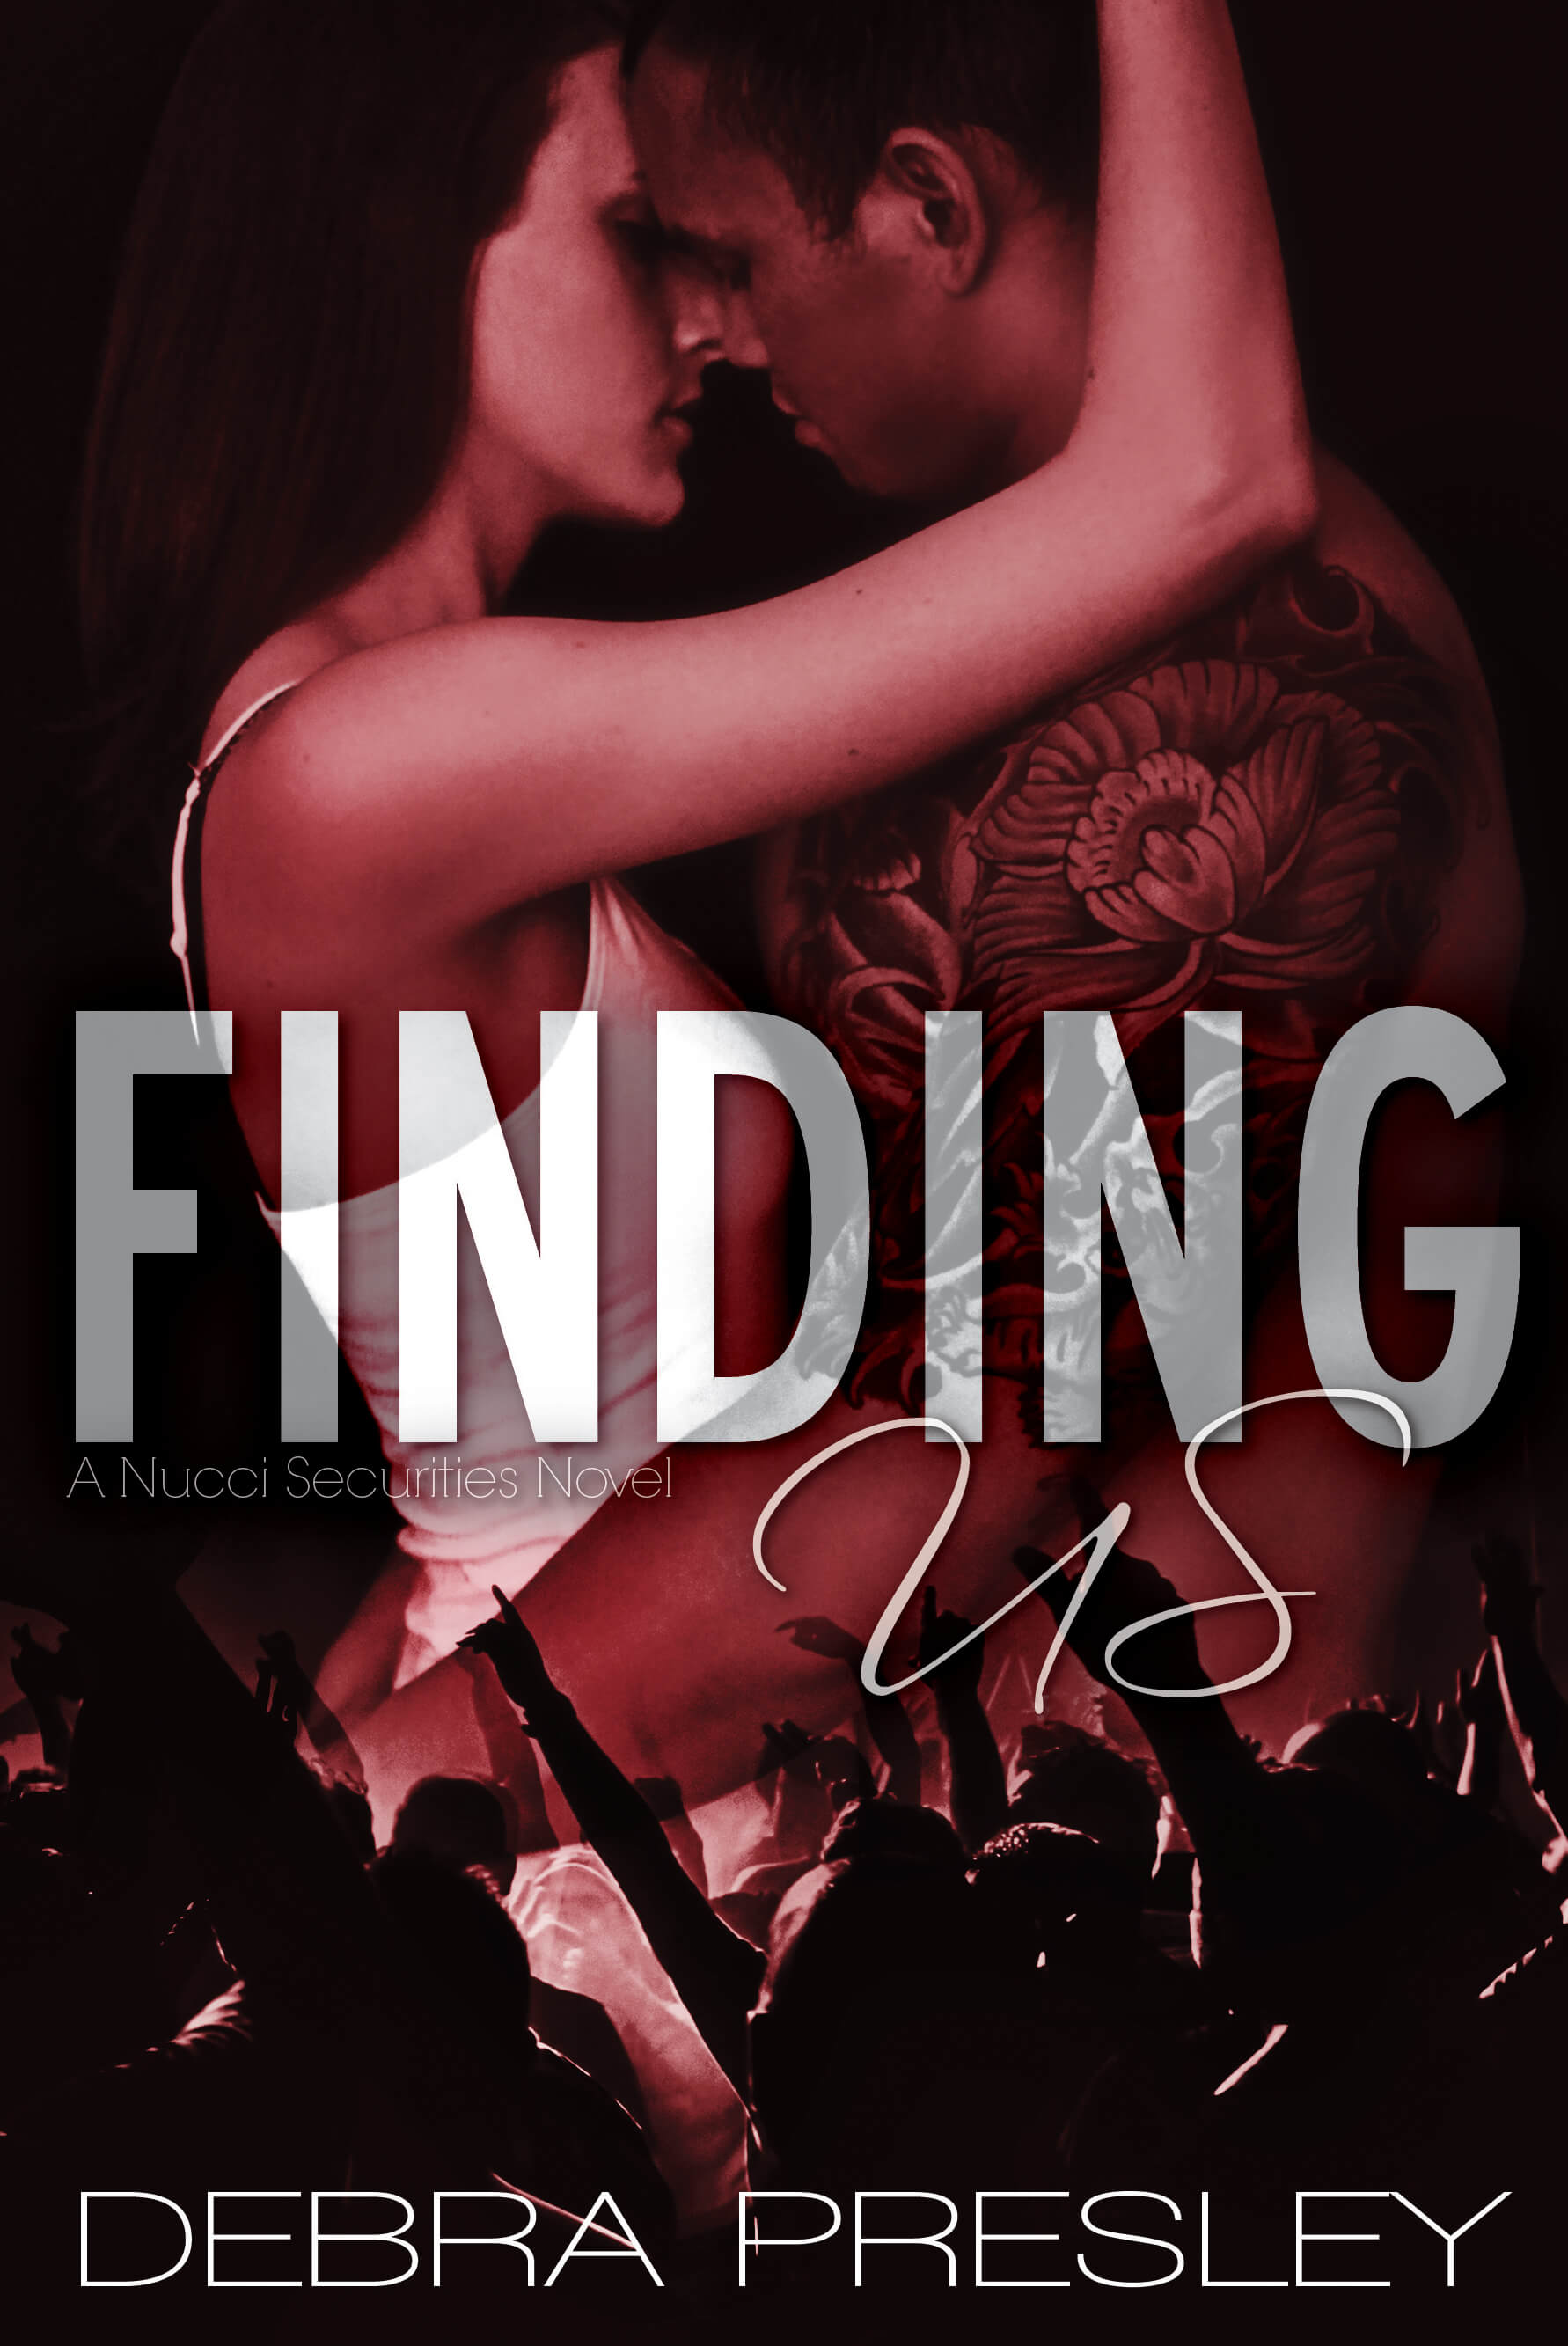 Review: Finding us